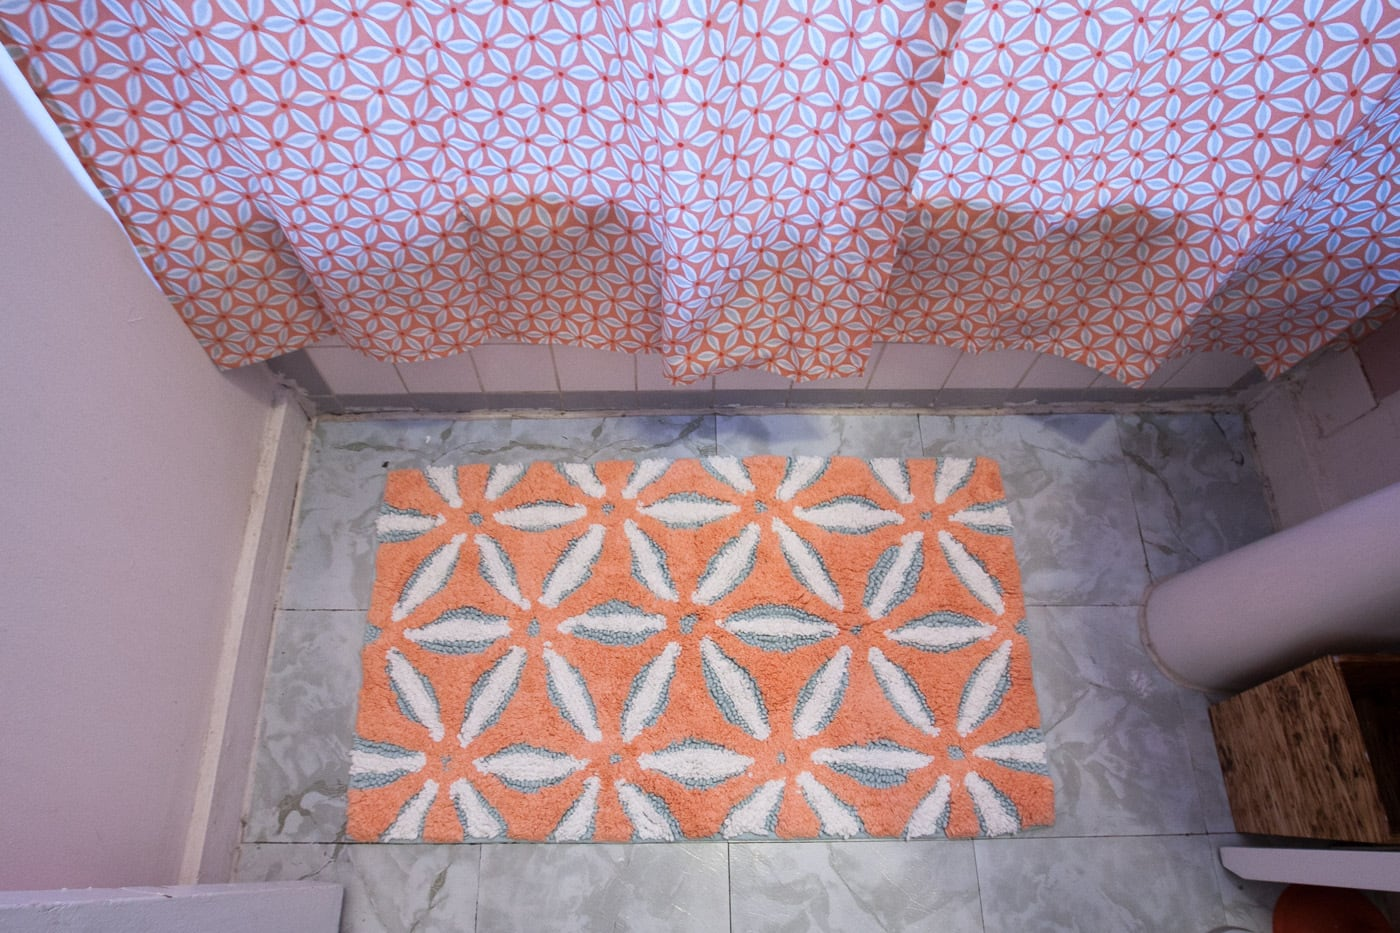 New pink and blue bath mat and shower curtain for my pink bathroom.